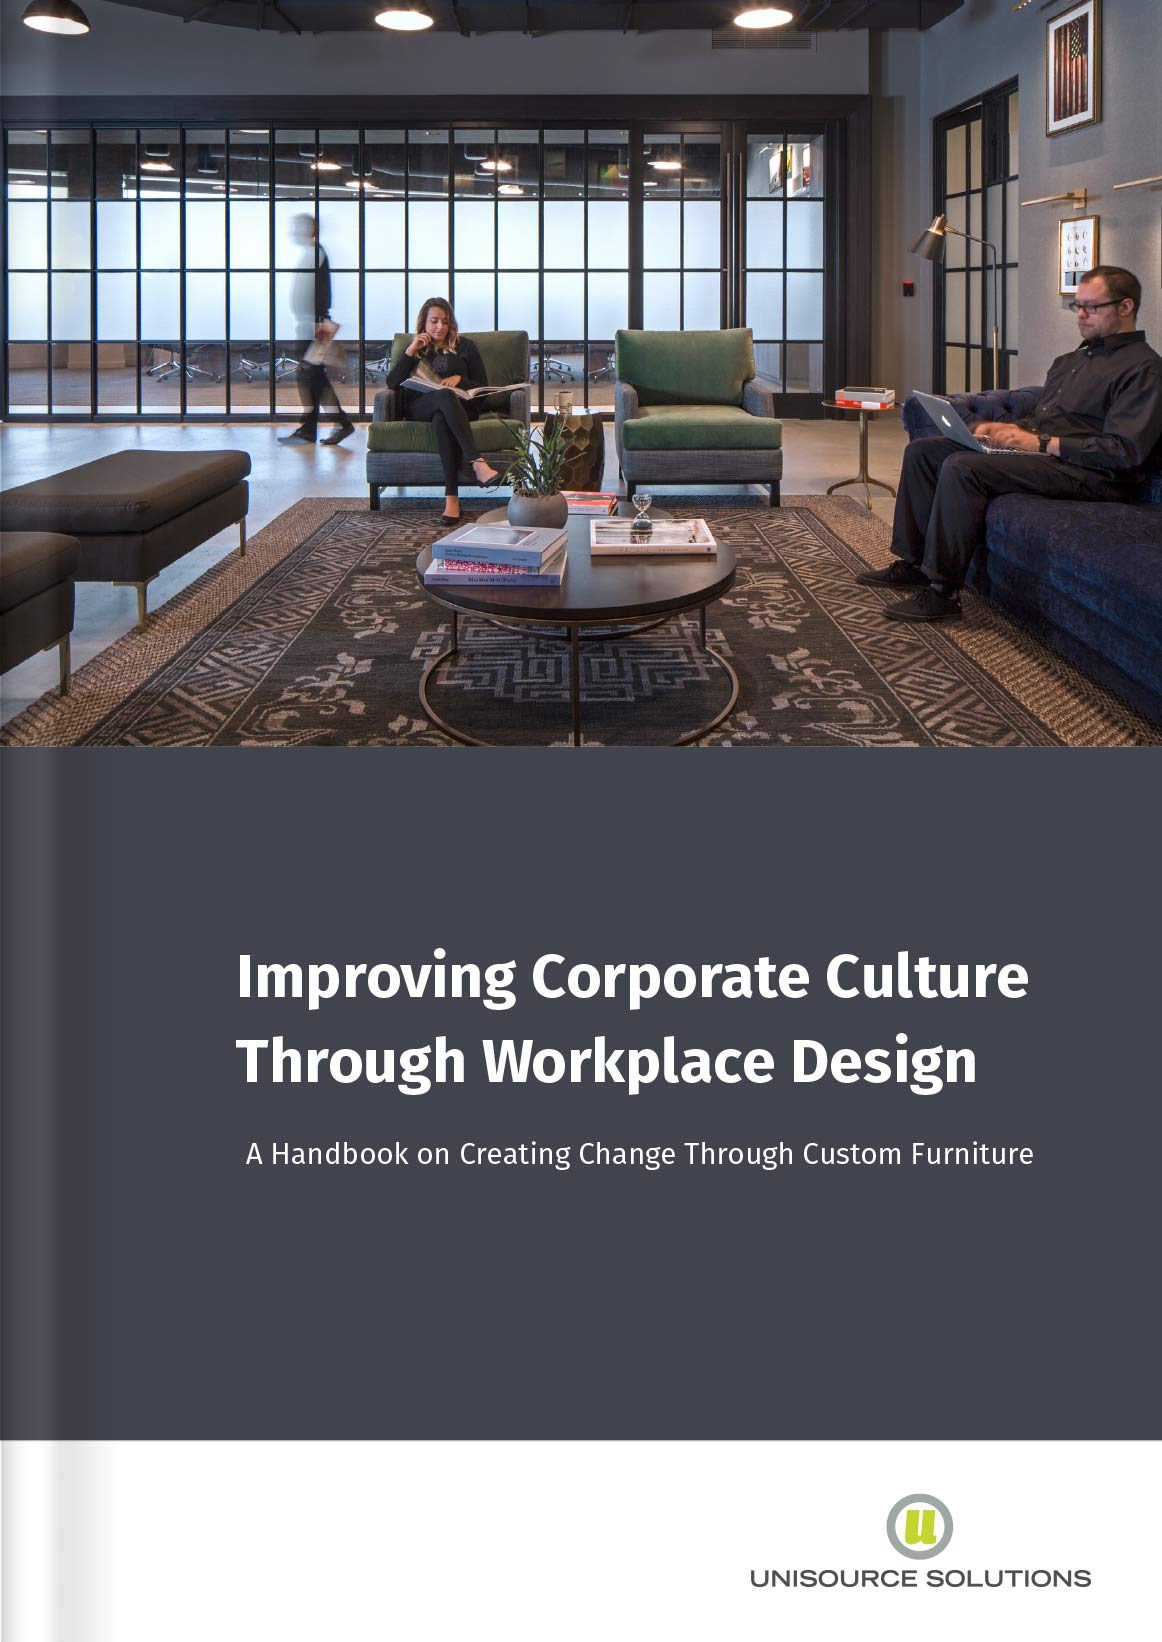 CorpCulture-Handbook_by_Unisource_Solutions-cover.jpg